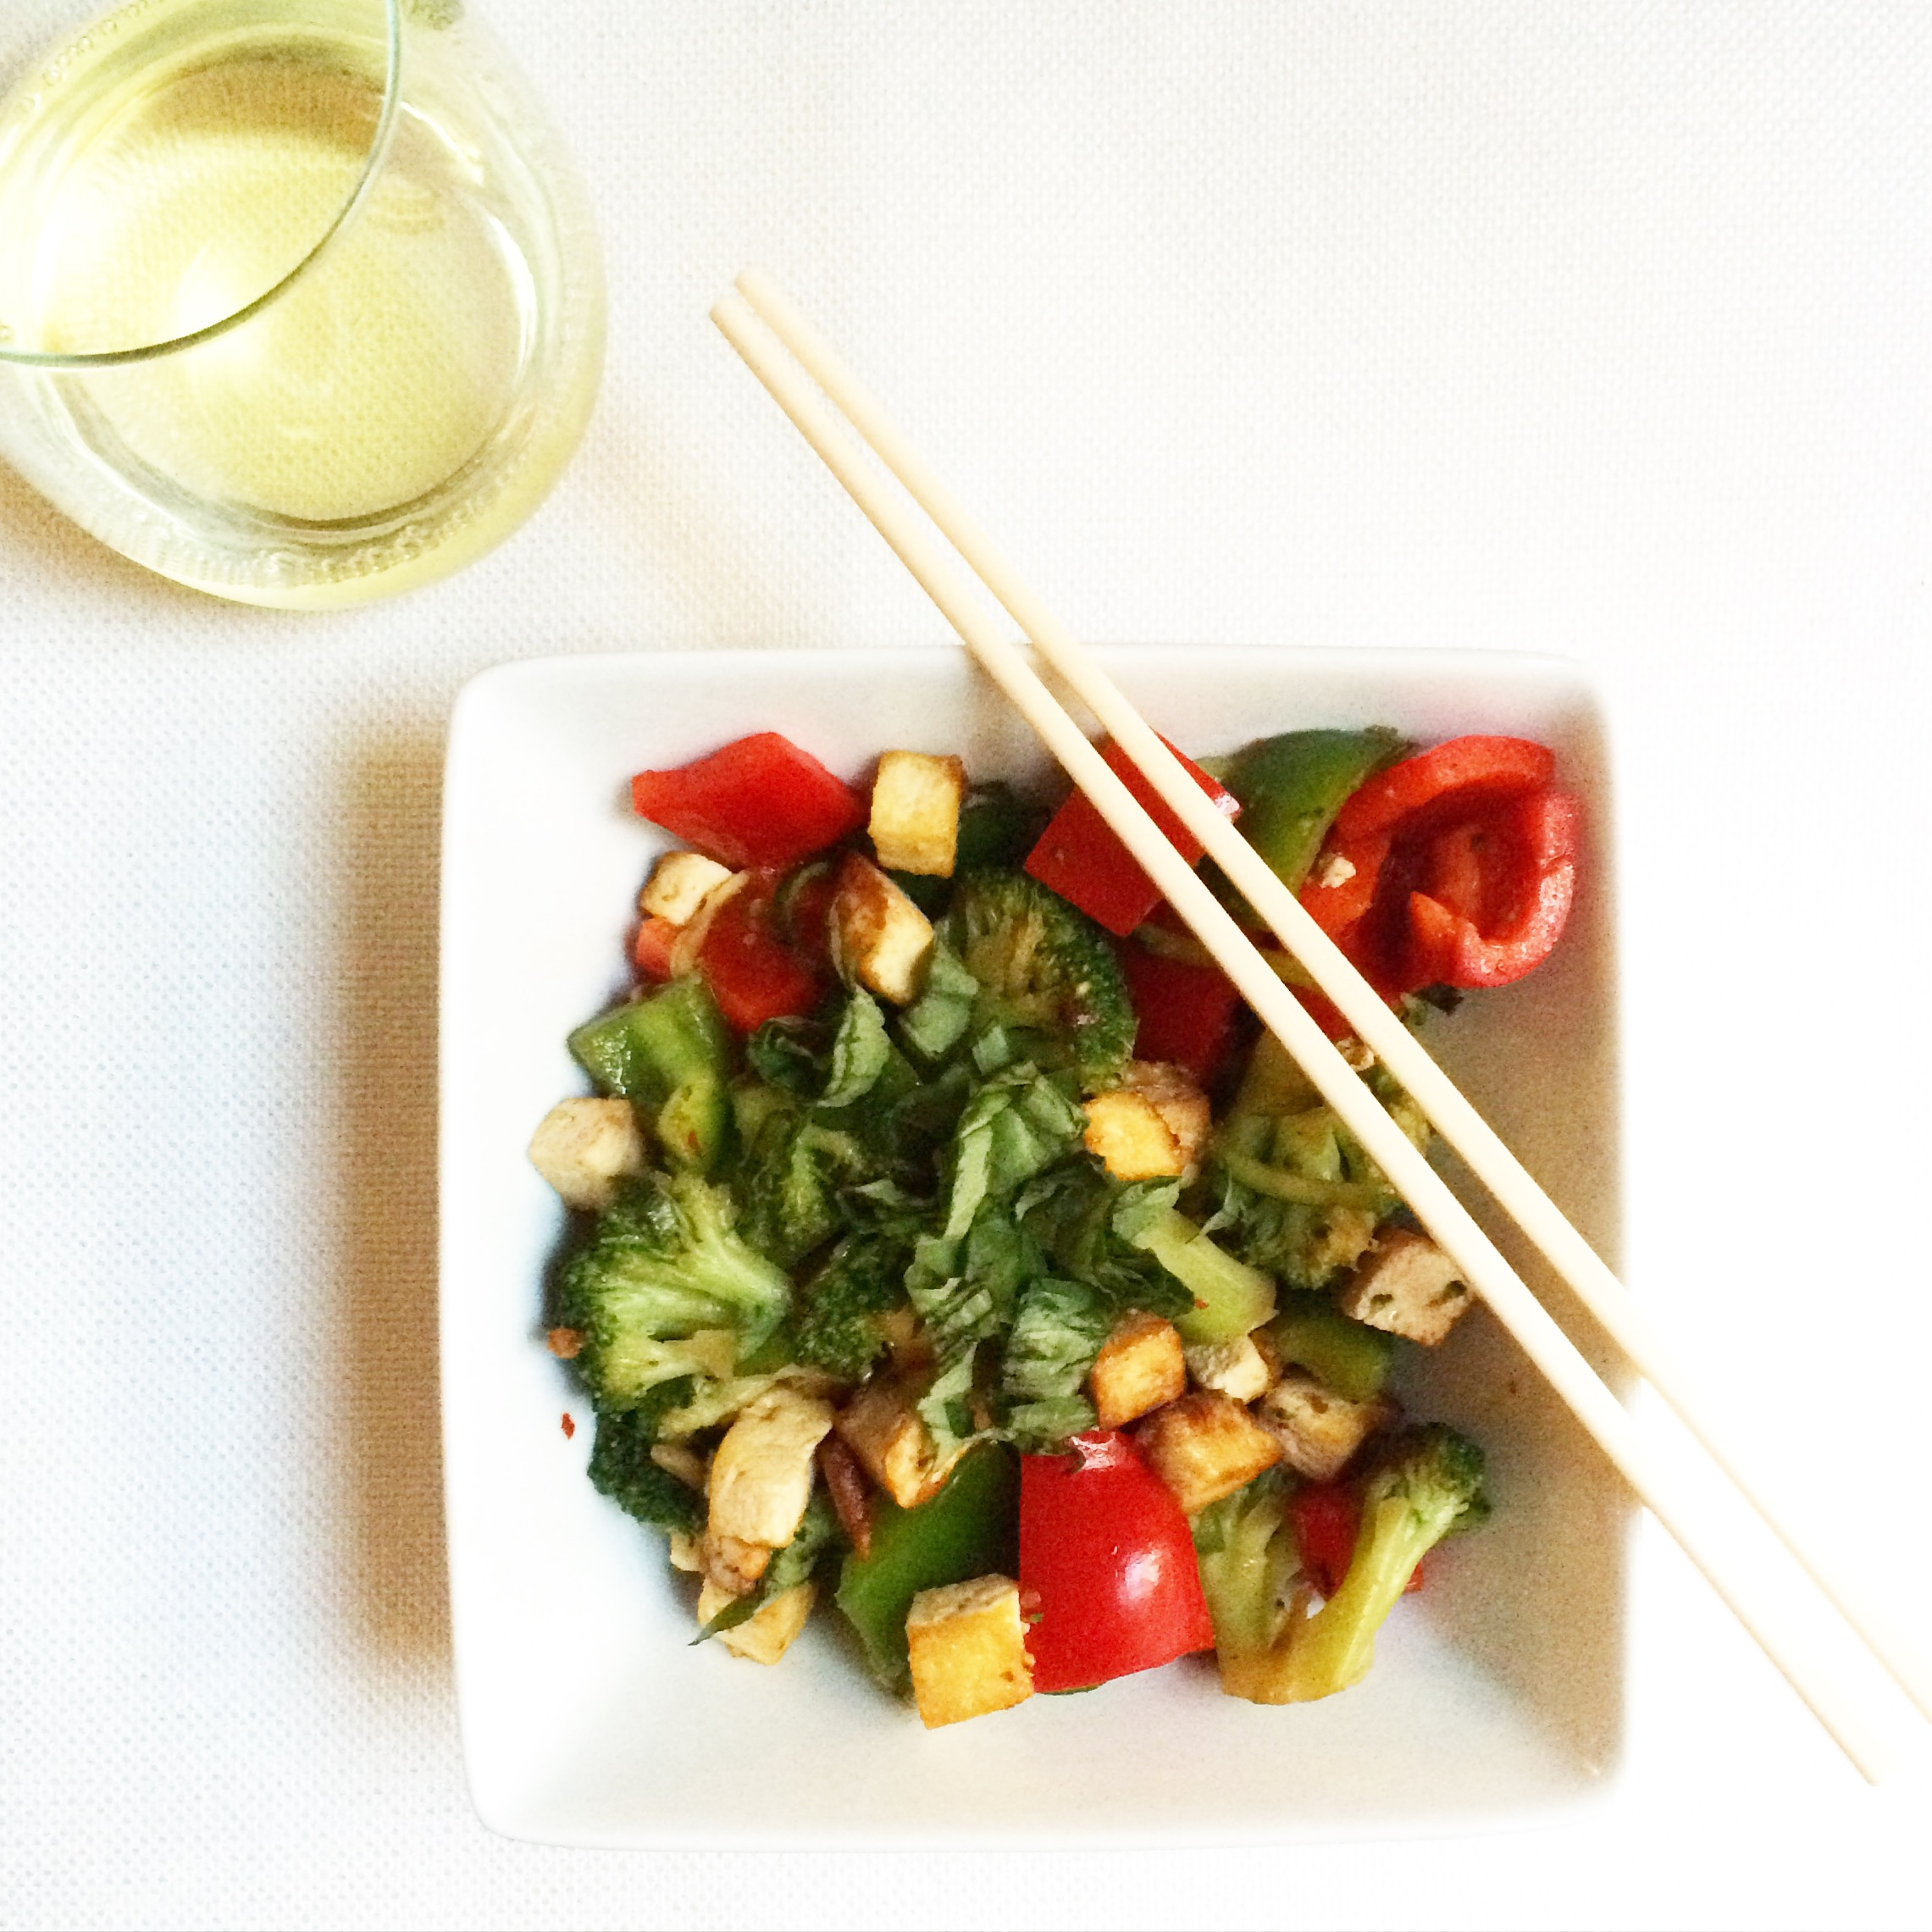 Summer Vegetable Stir Fry with Crispy Tofu